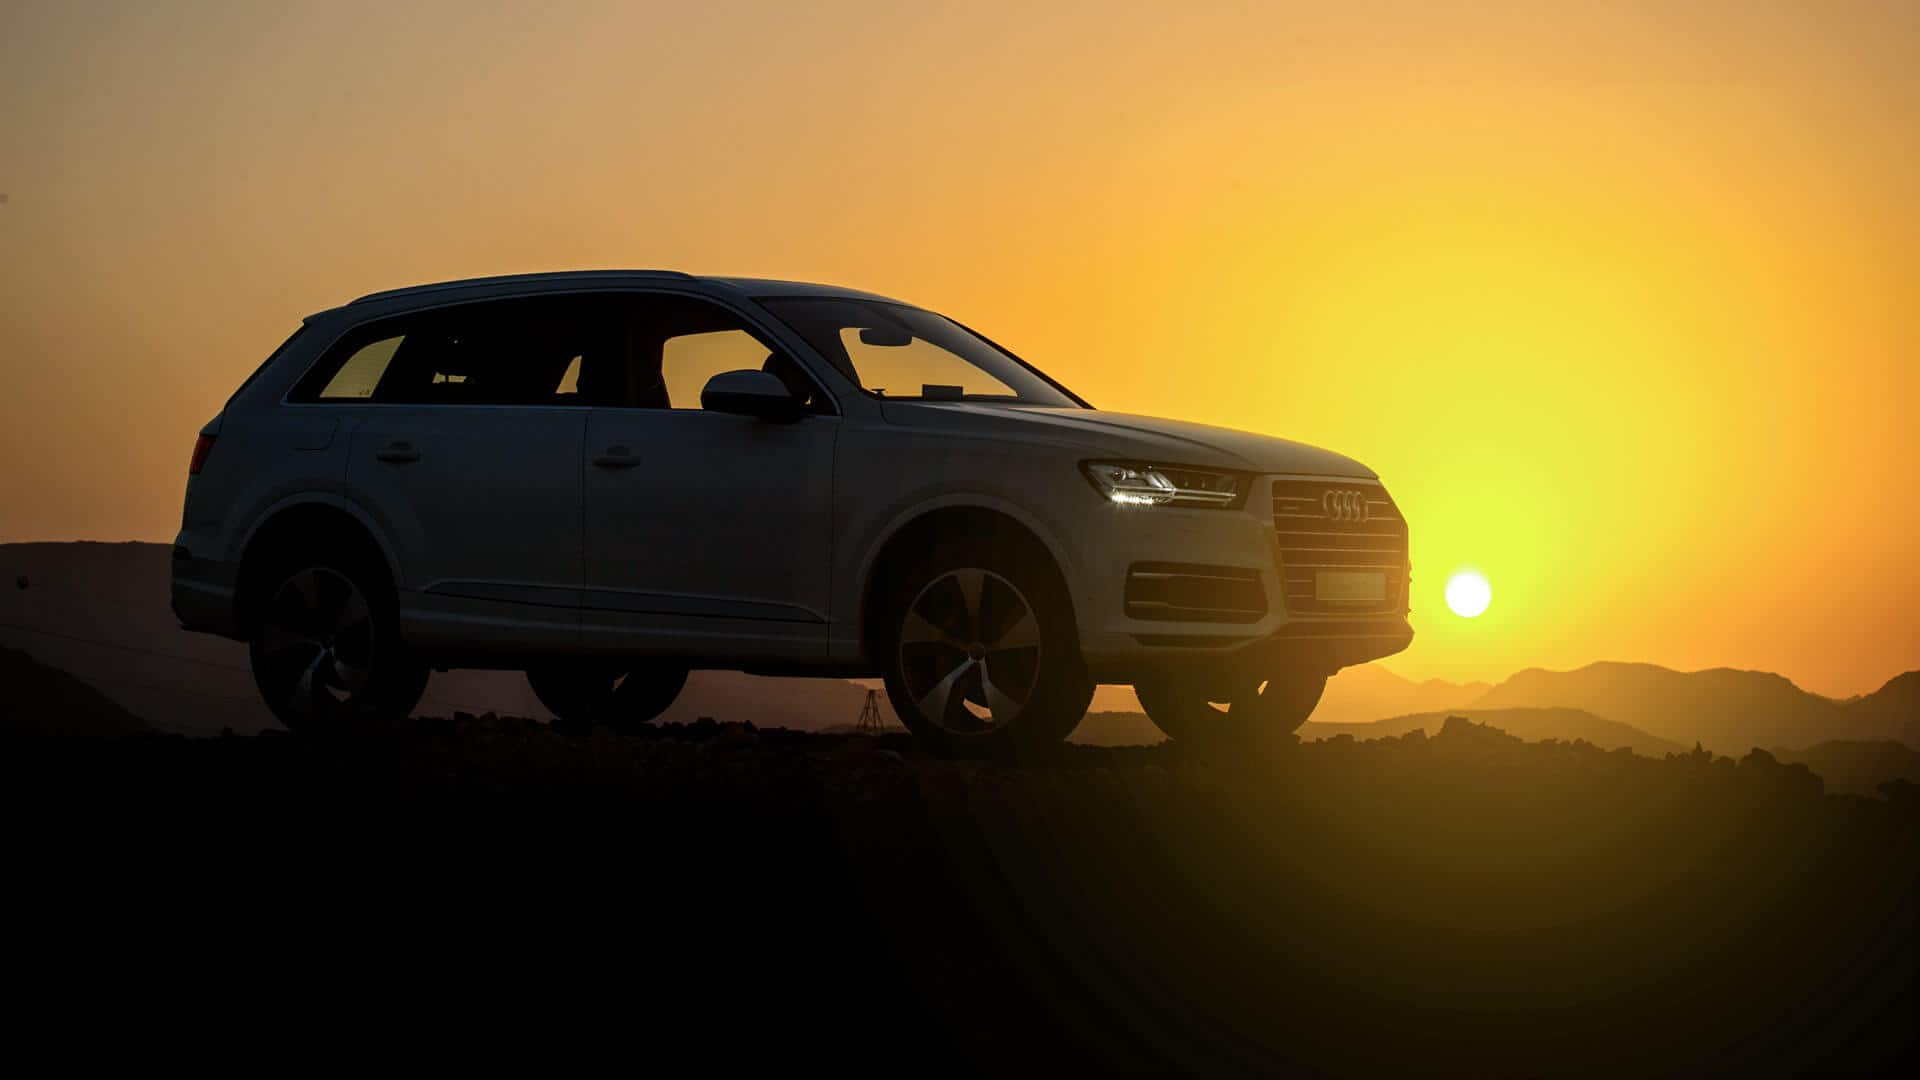 Audi for Sale Near Me - 2018 - 2019 New Car Reviews by Language Kompis